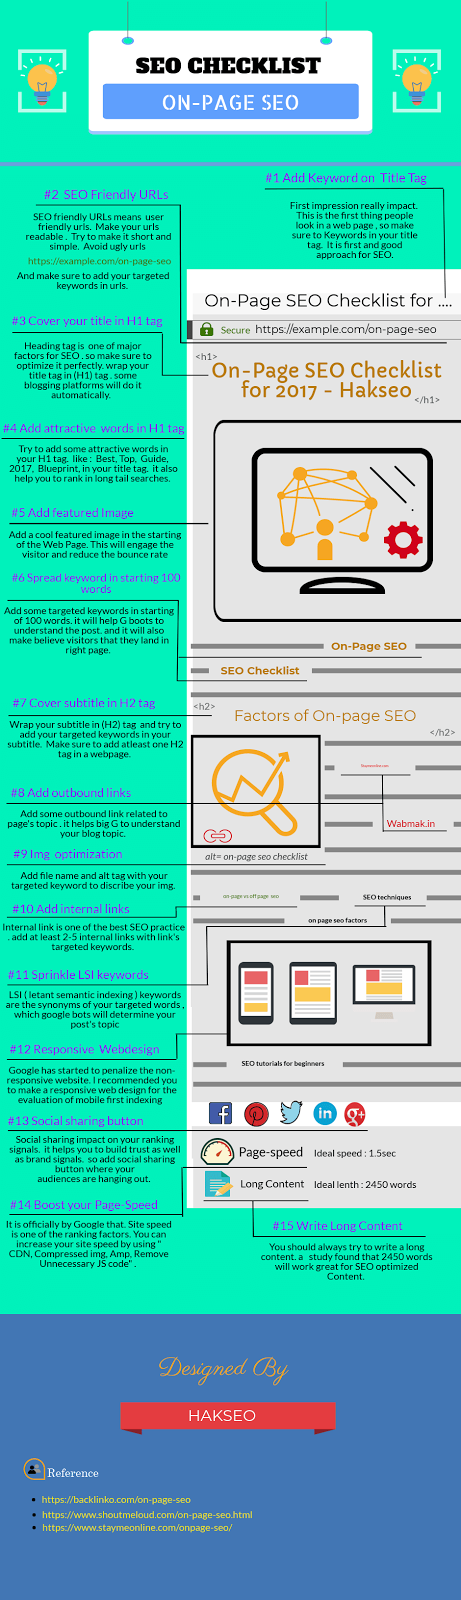 infographic of on page seo